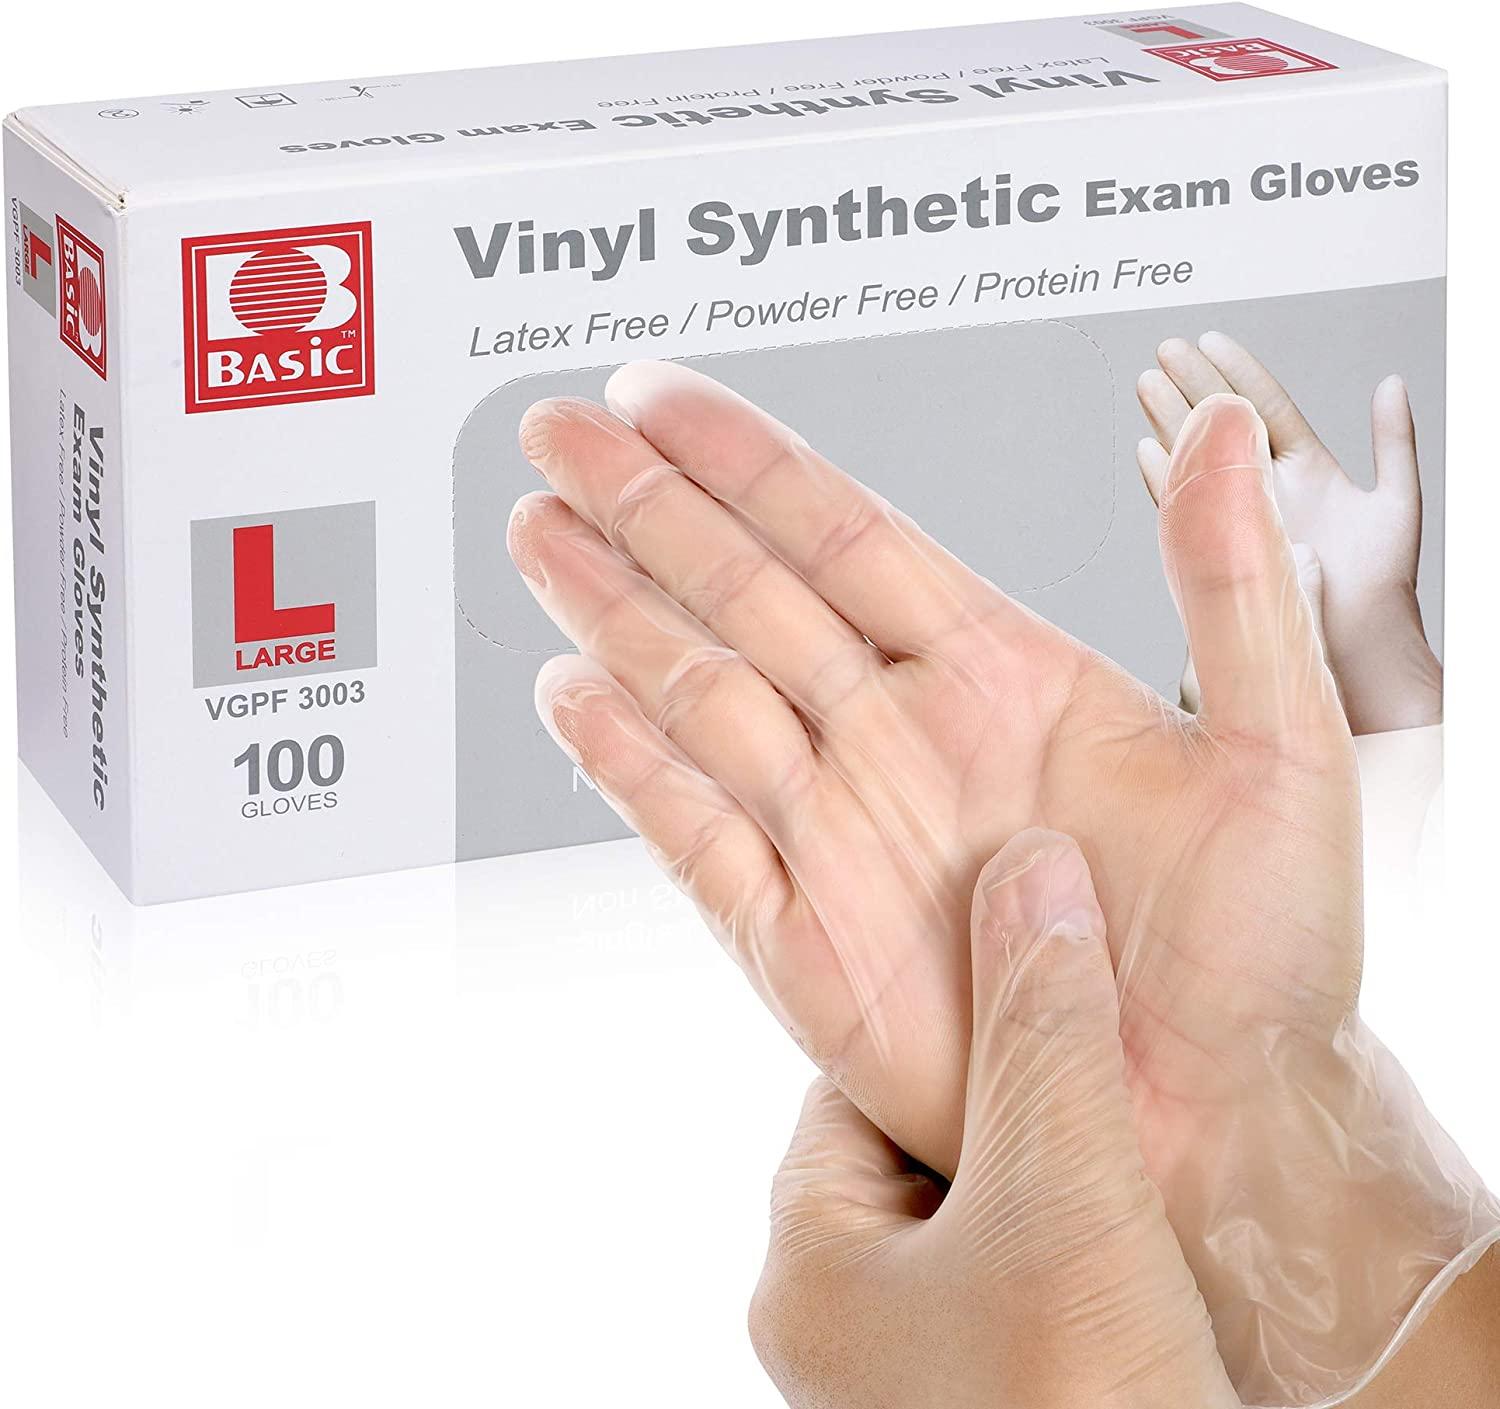 Large Disposable Vinyl Gloves Latex Free Powder Free PVC Exam Gloves Cleaning Gloves For Food Service Kitchen Cleaning First Aid - 100pcs/box, Clear